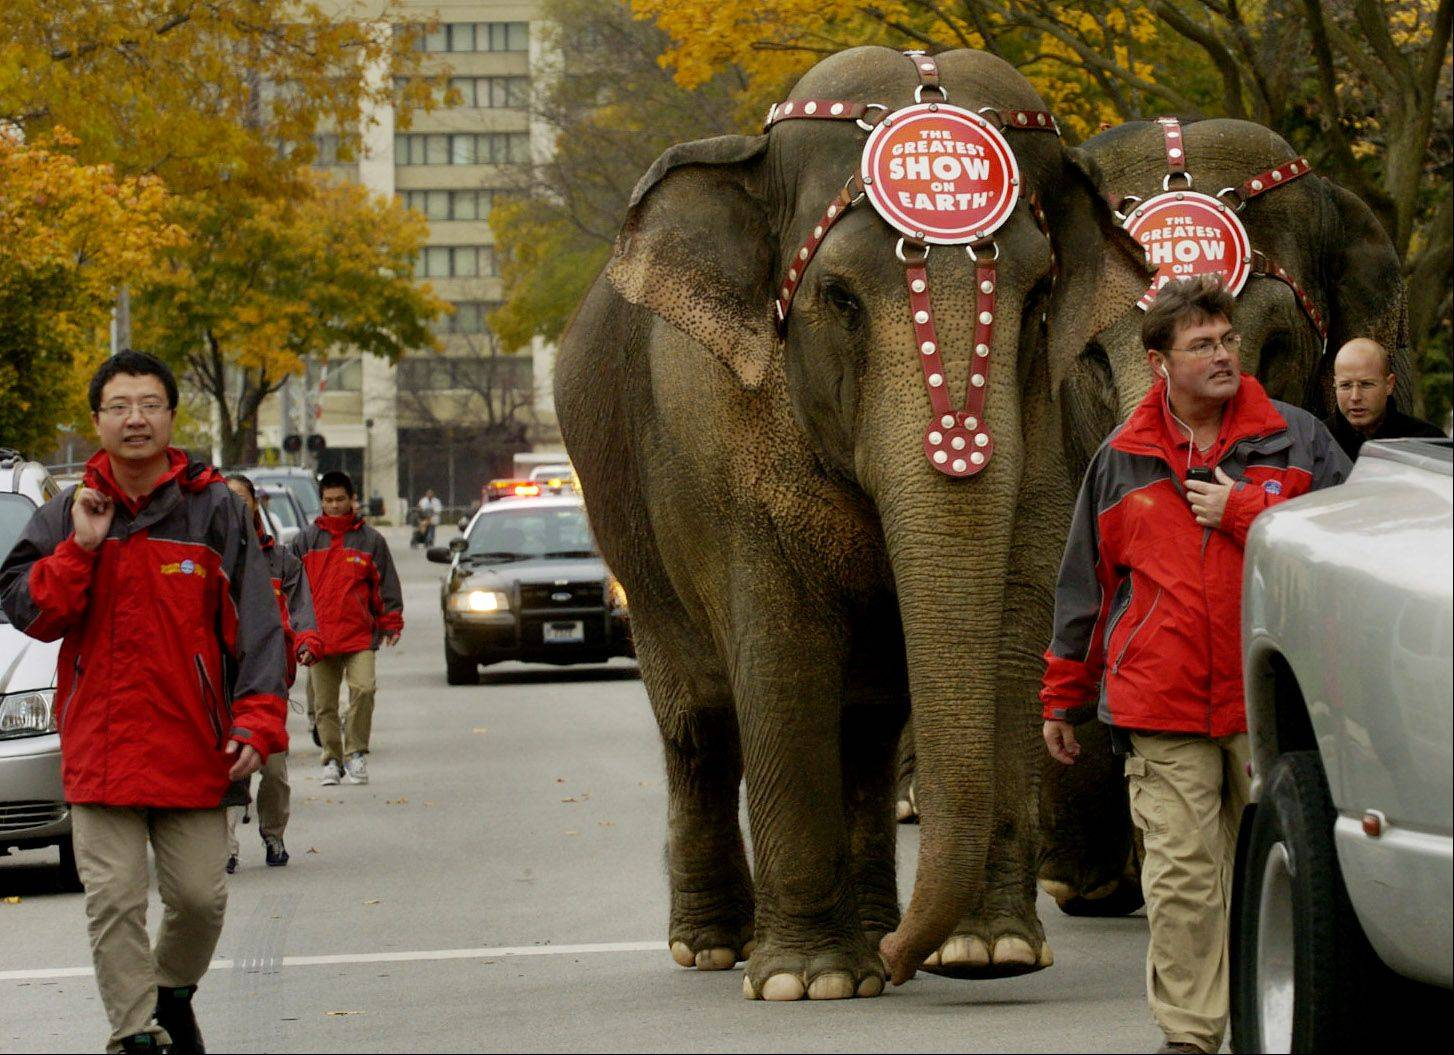 Ringling Bros. elephants walk down Pratt Street from Allstate Arena to Orchard Place Elementary School in Des Plaines.